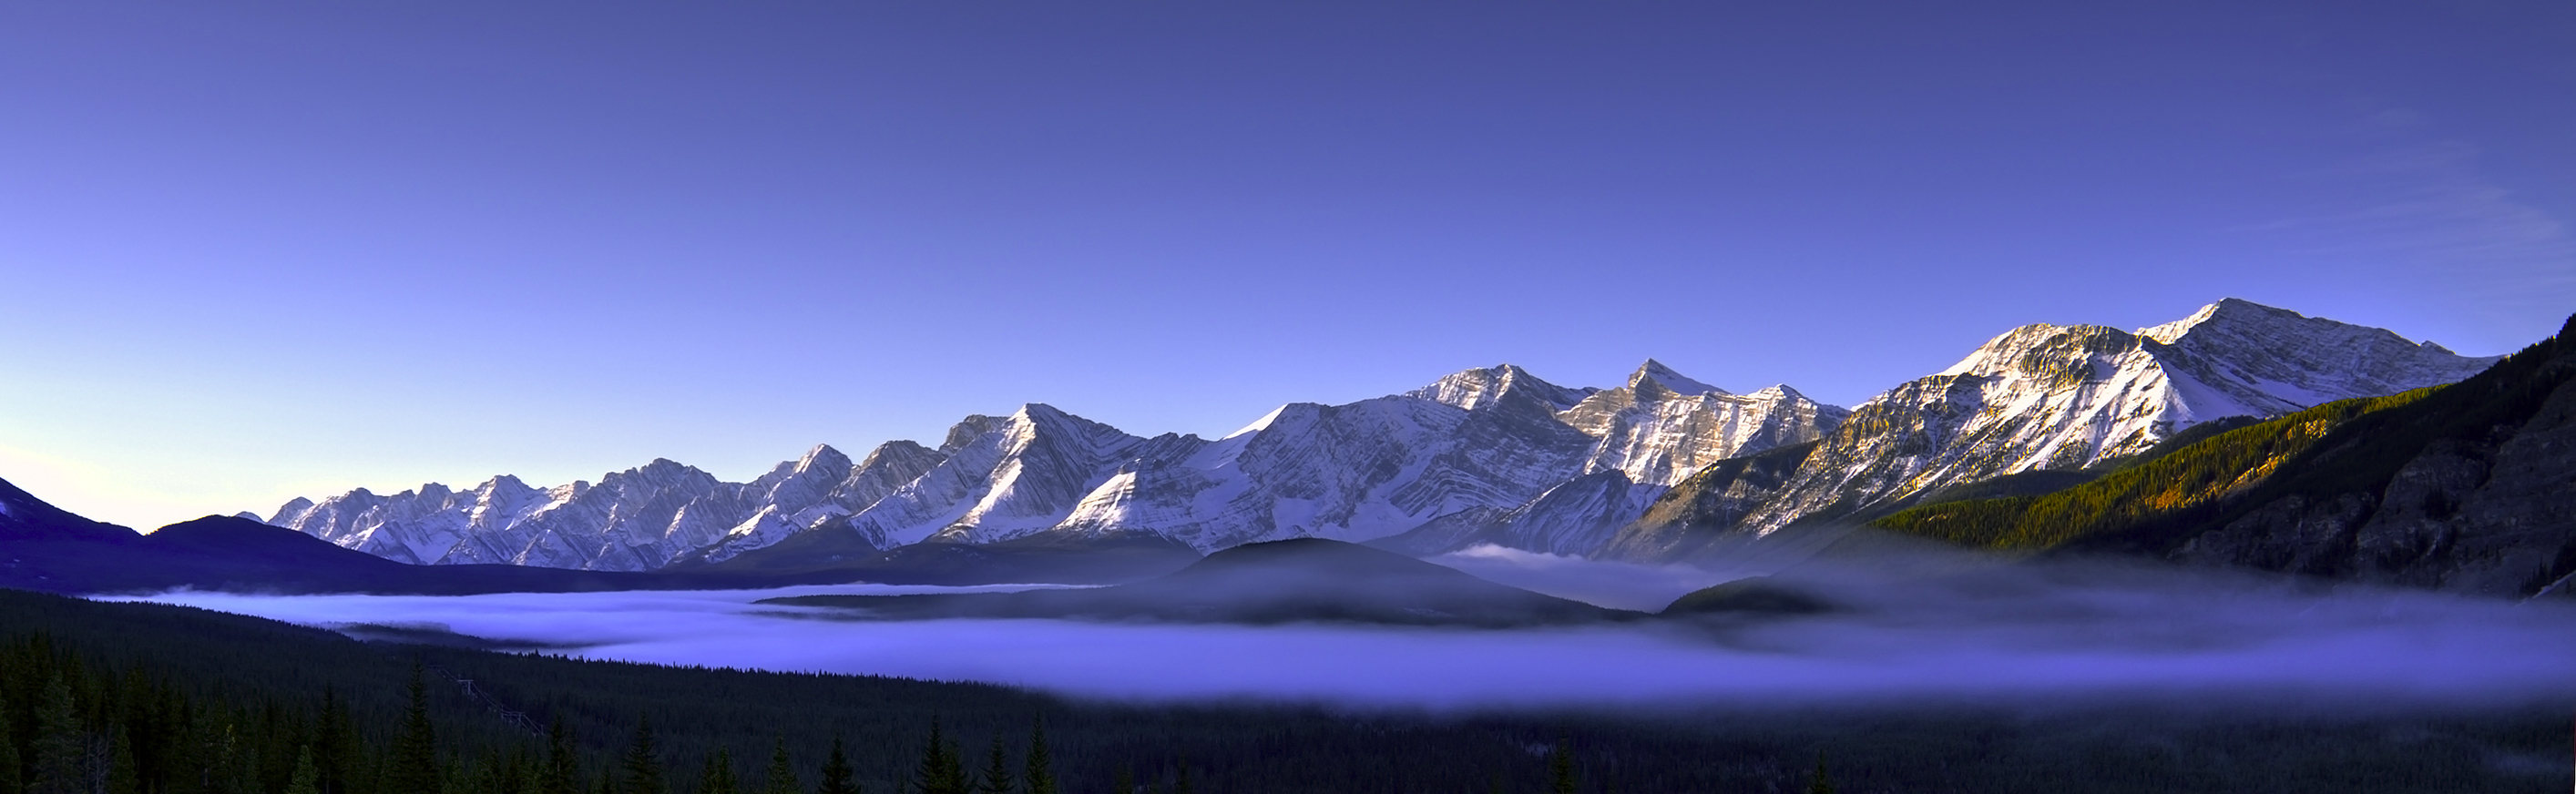 kananaskis valley in mist